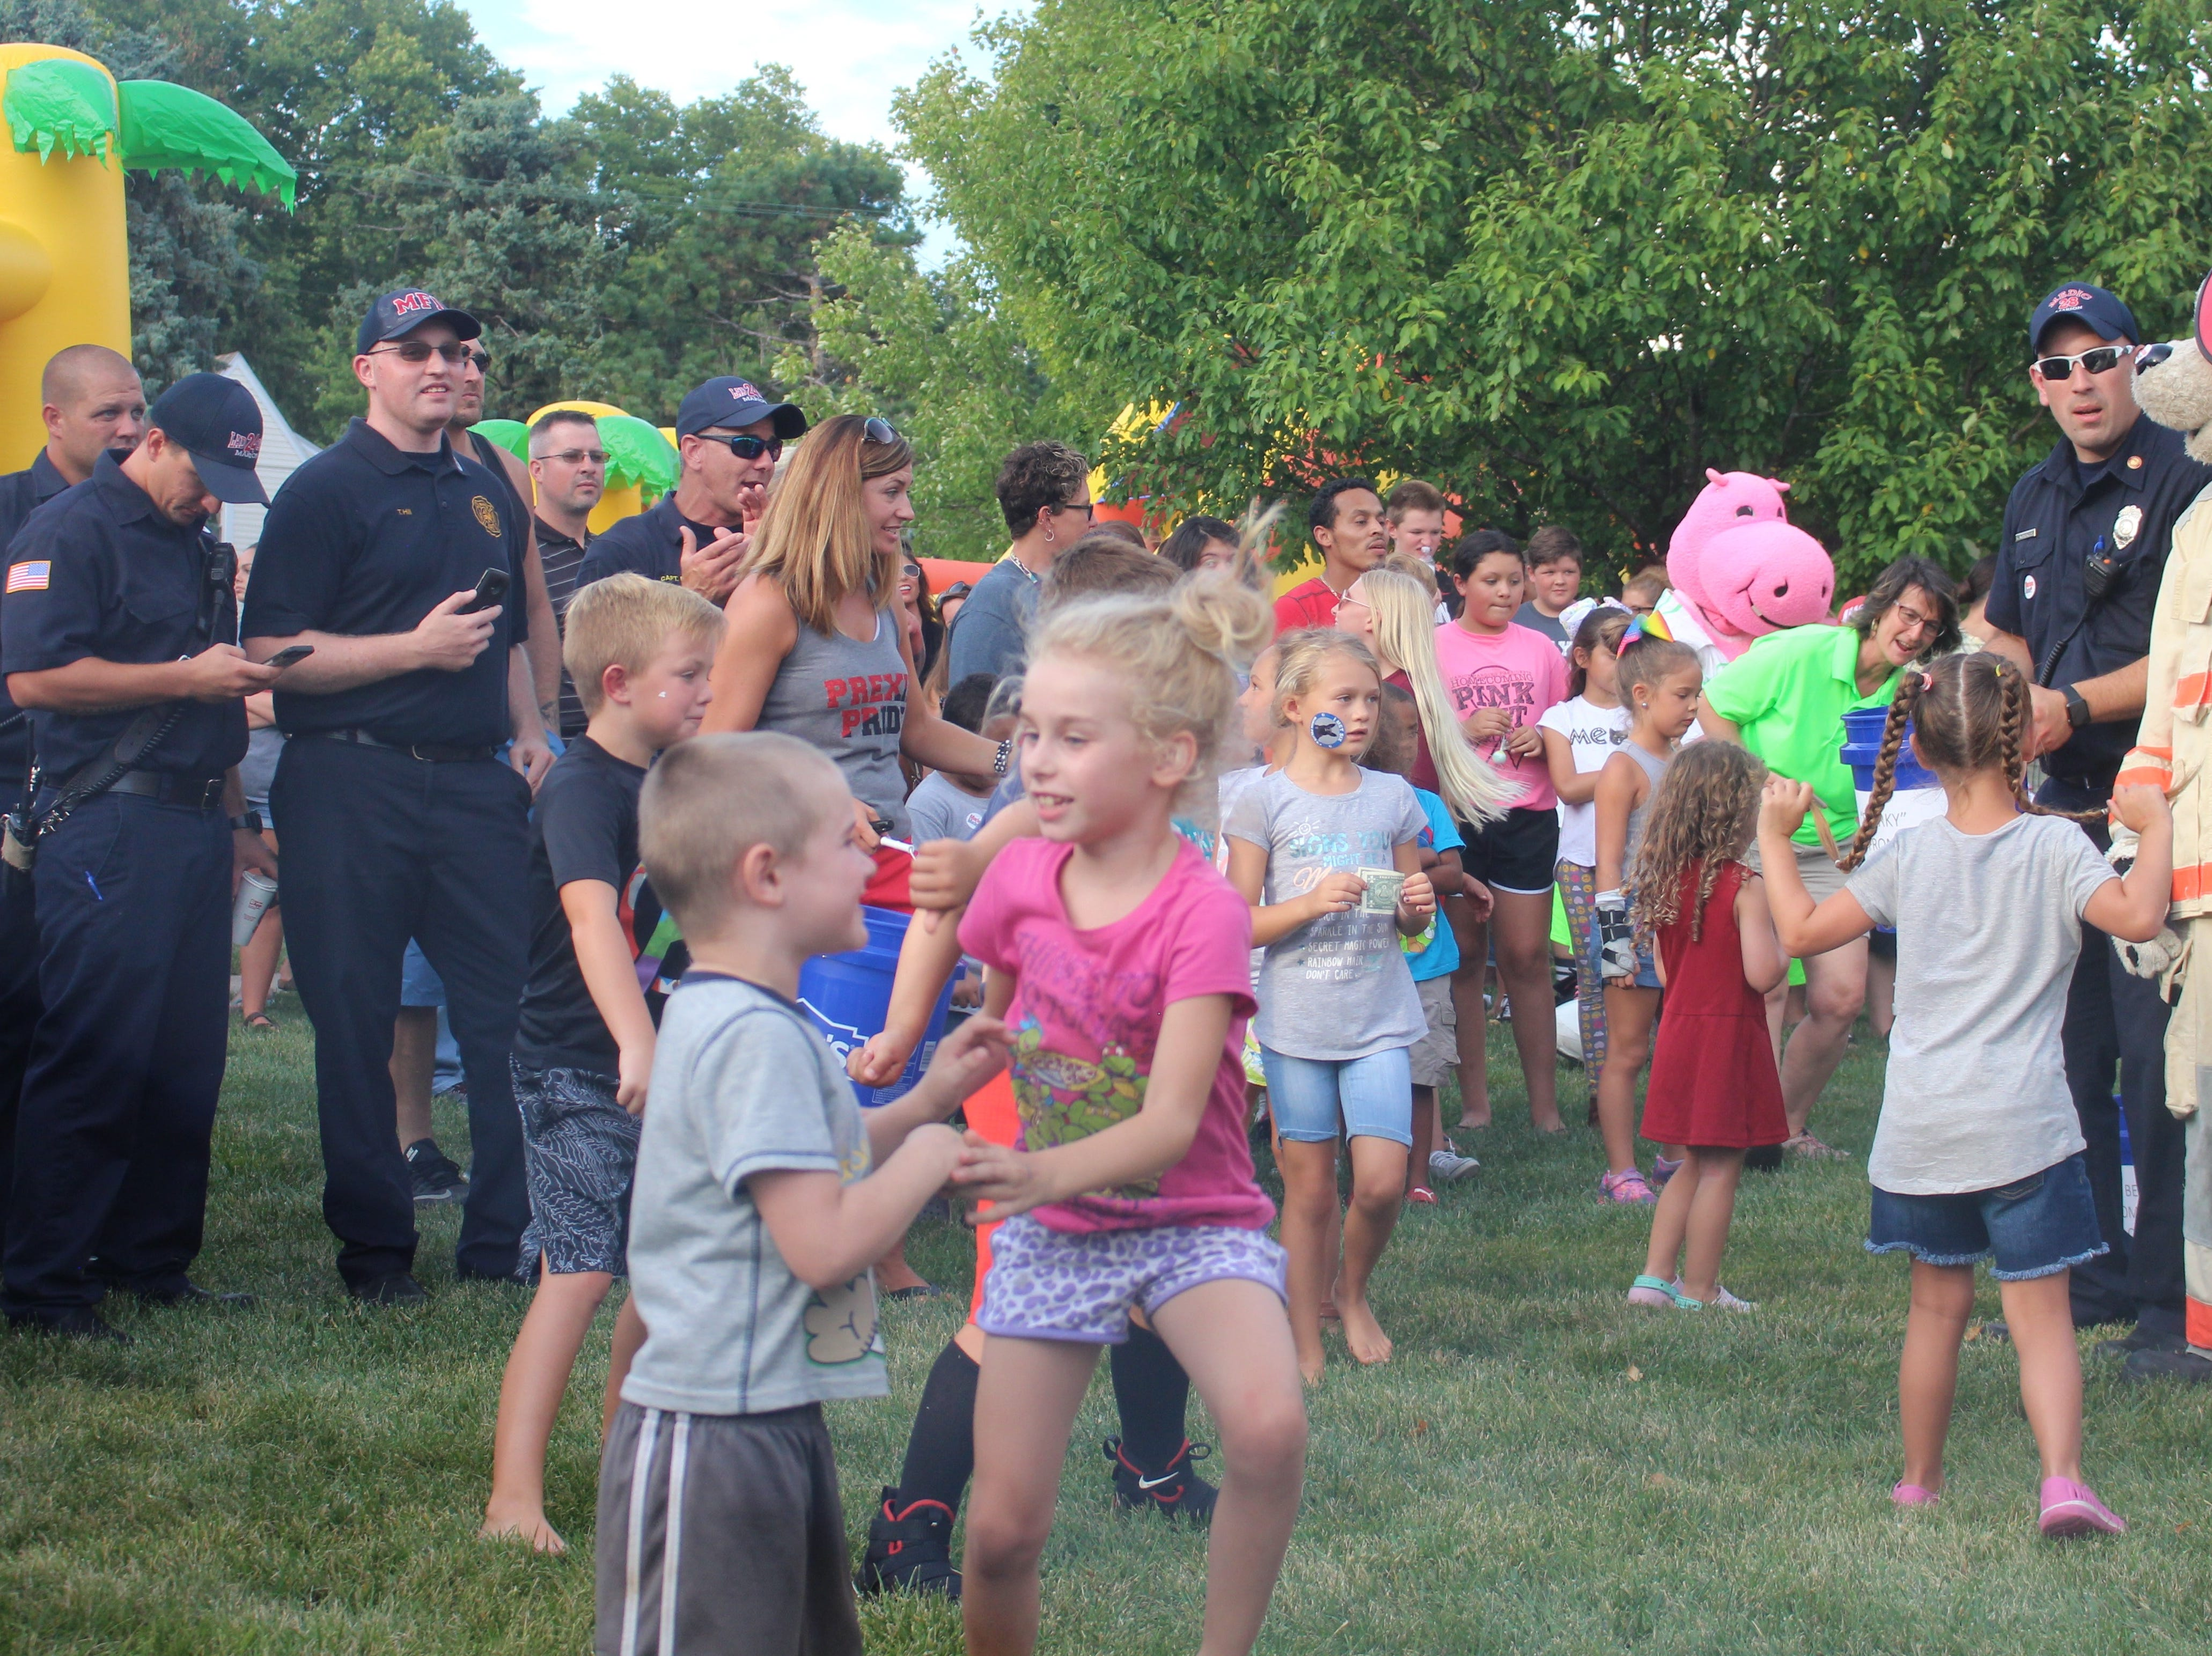 Marion City Firefighters watch as their mascot dances during a competition to see who could raise the most donations during the National Night Out event at Grant Middle School on Tuesday.  Attendees were asked to place donations in buckets placed in front of the mascots. The donations will go towards the event next year.